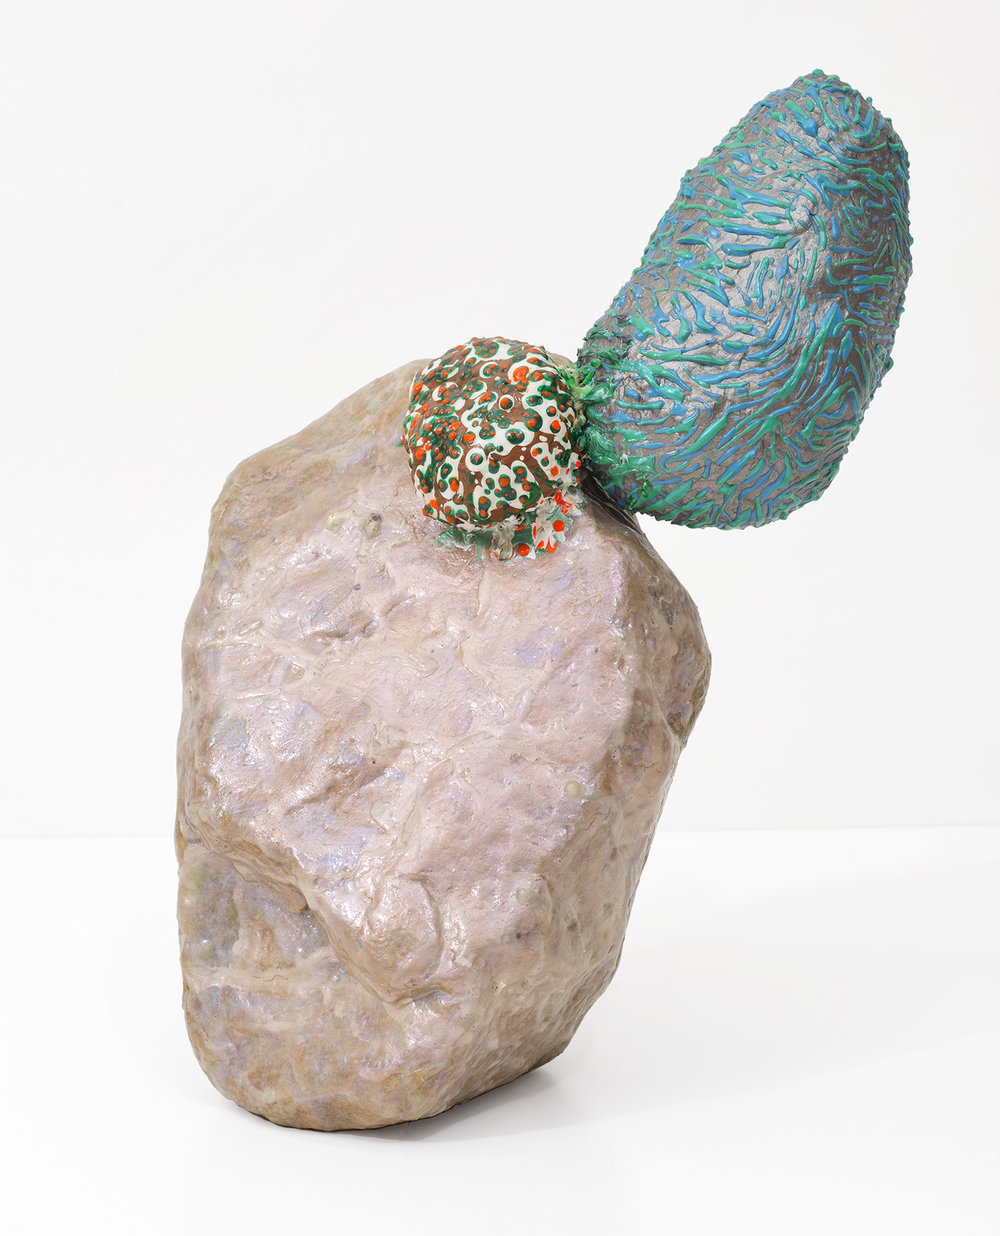 The Other - plaster, stone, acrylic, papier maché | 15 8 x 7 inches